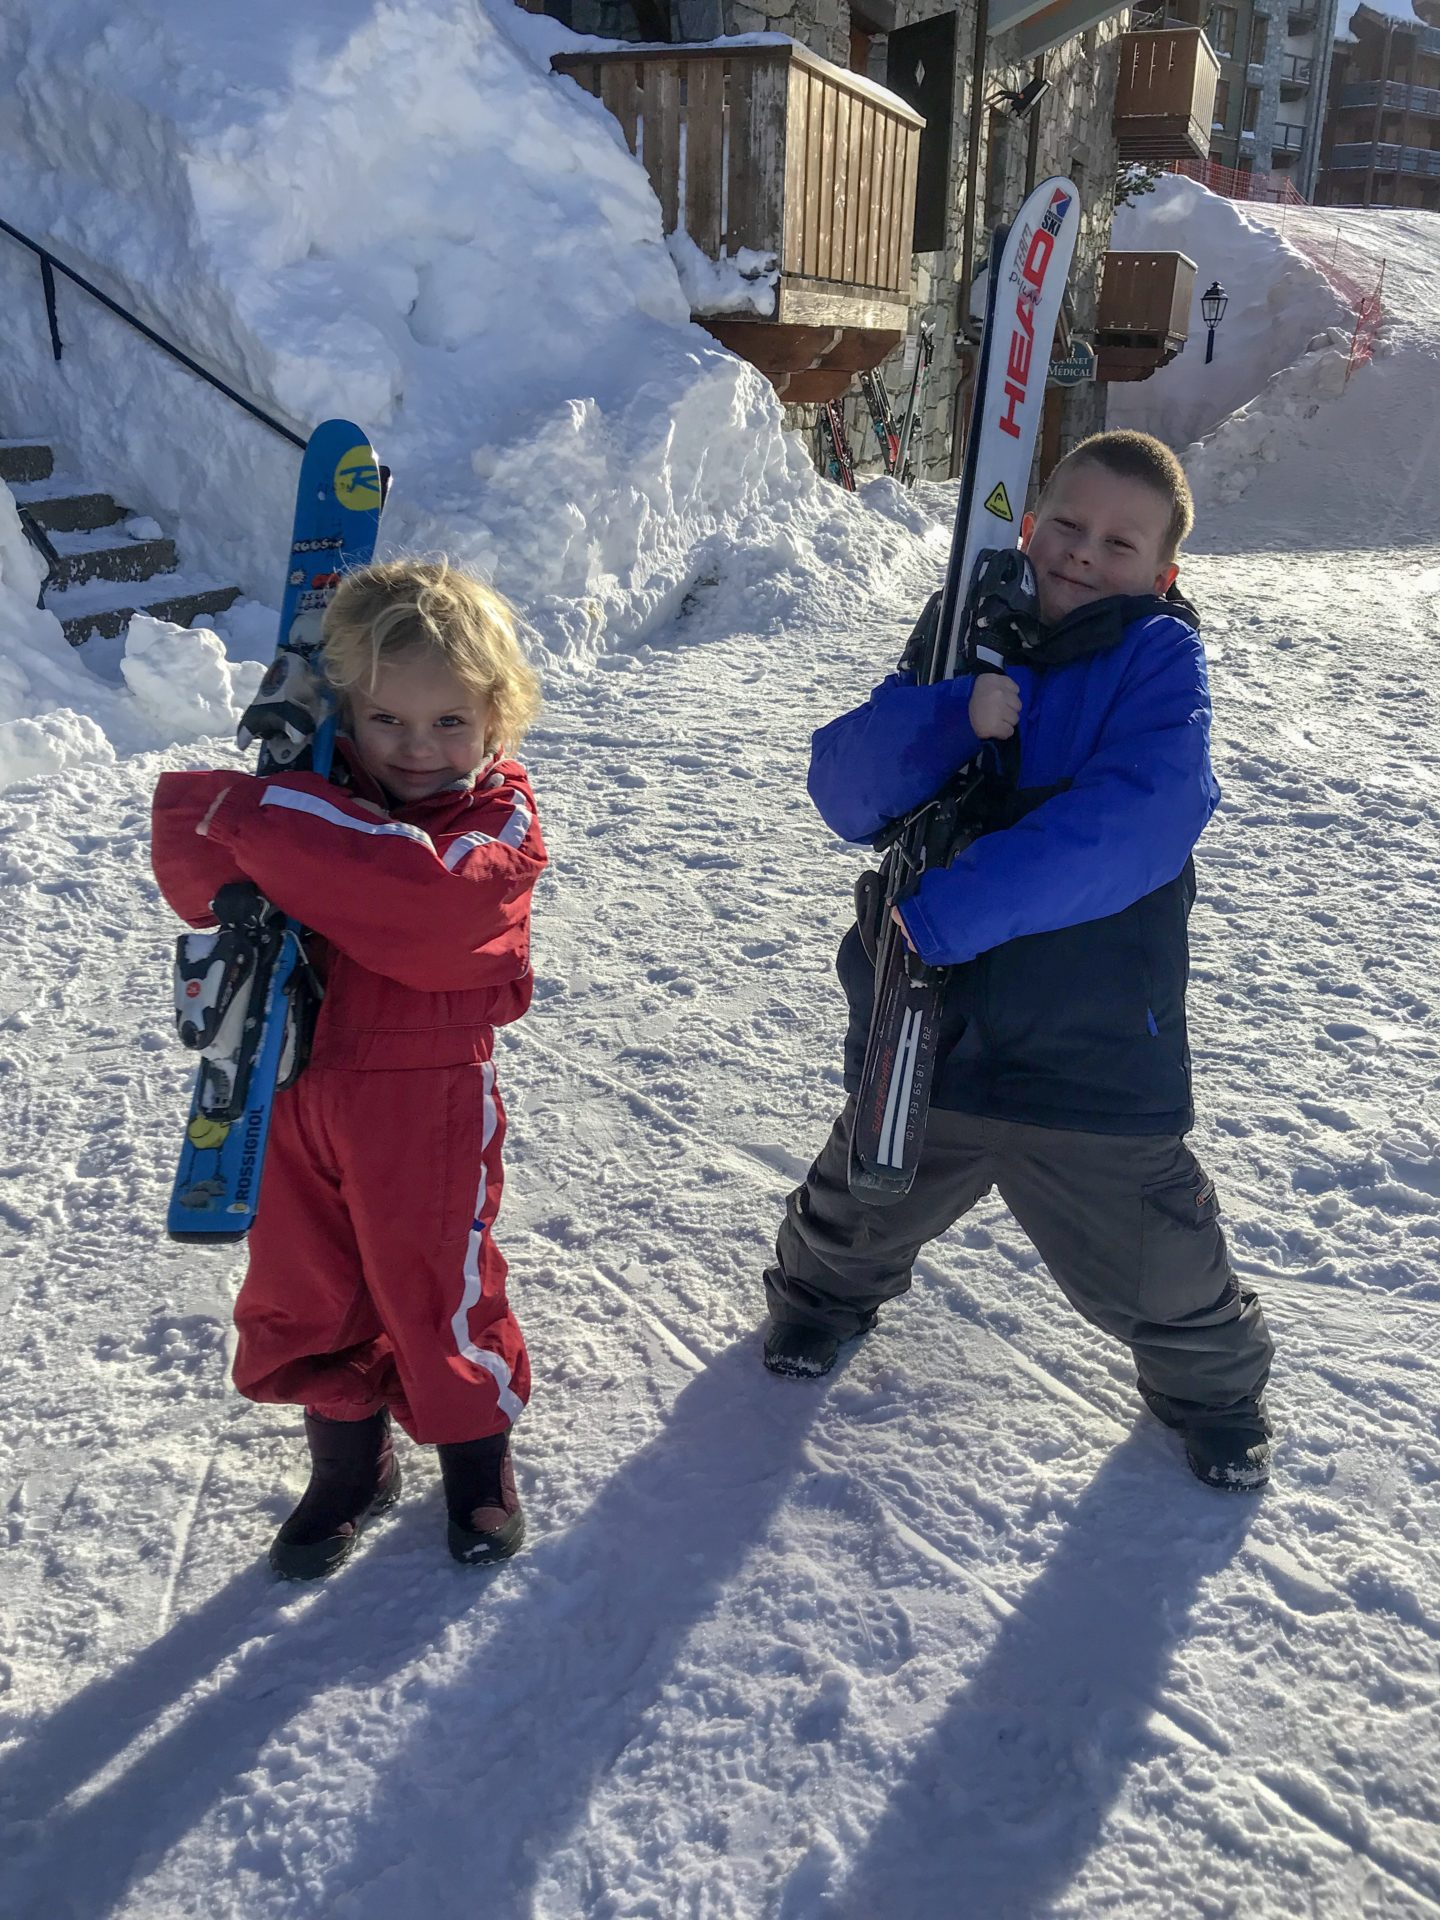 How to have an epic family holiday - the Things with their skis